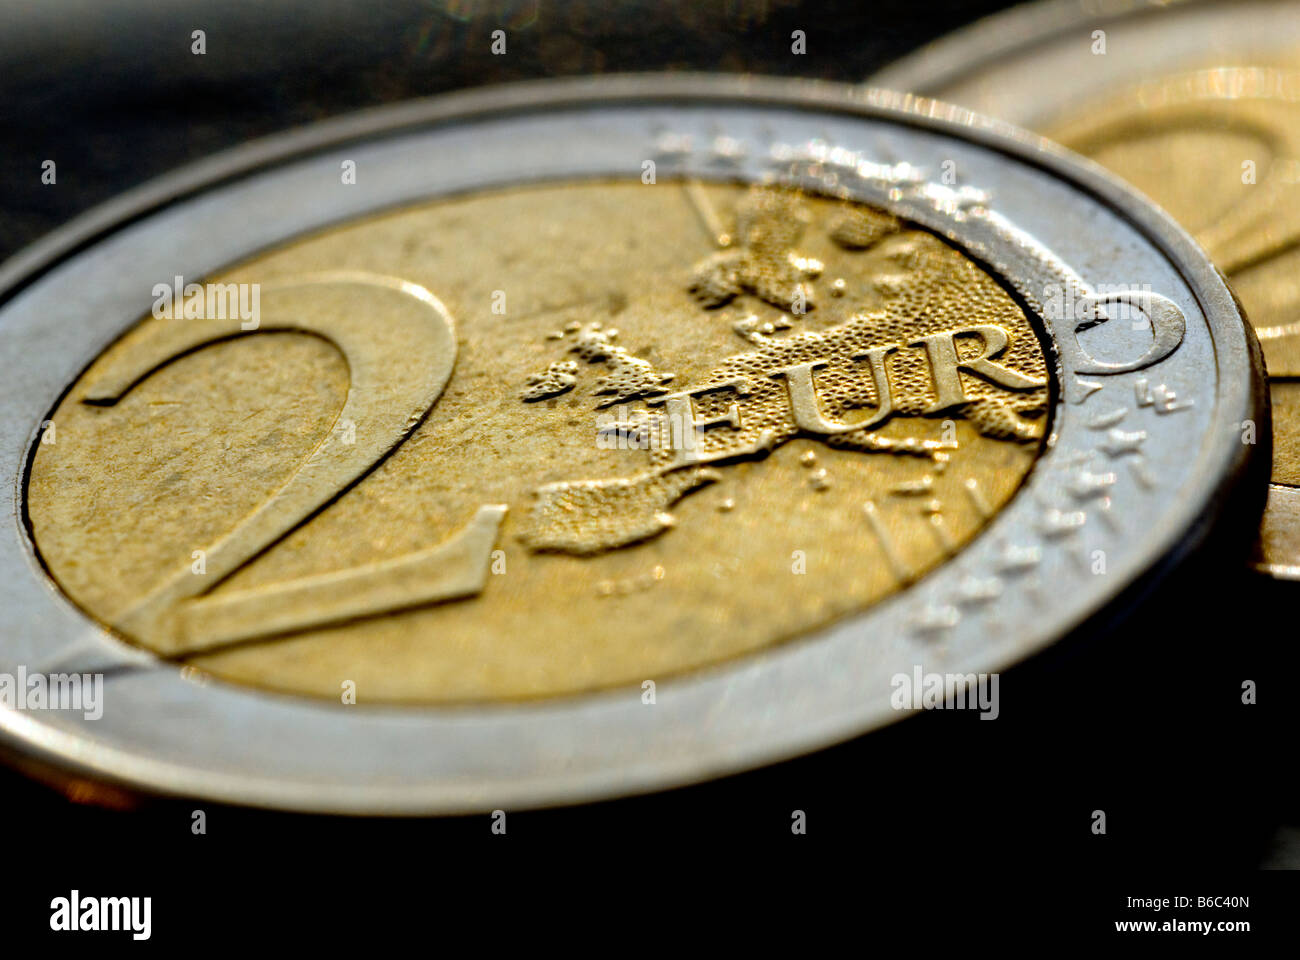 A TWO EURO COIN - Stock Image